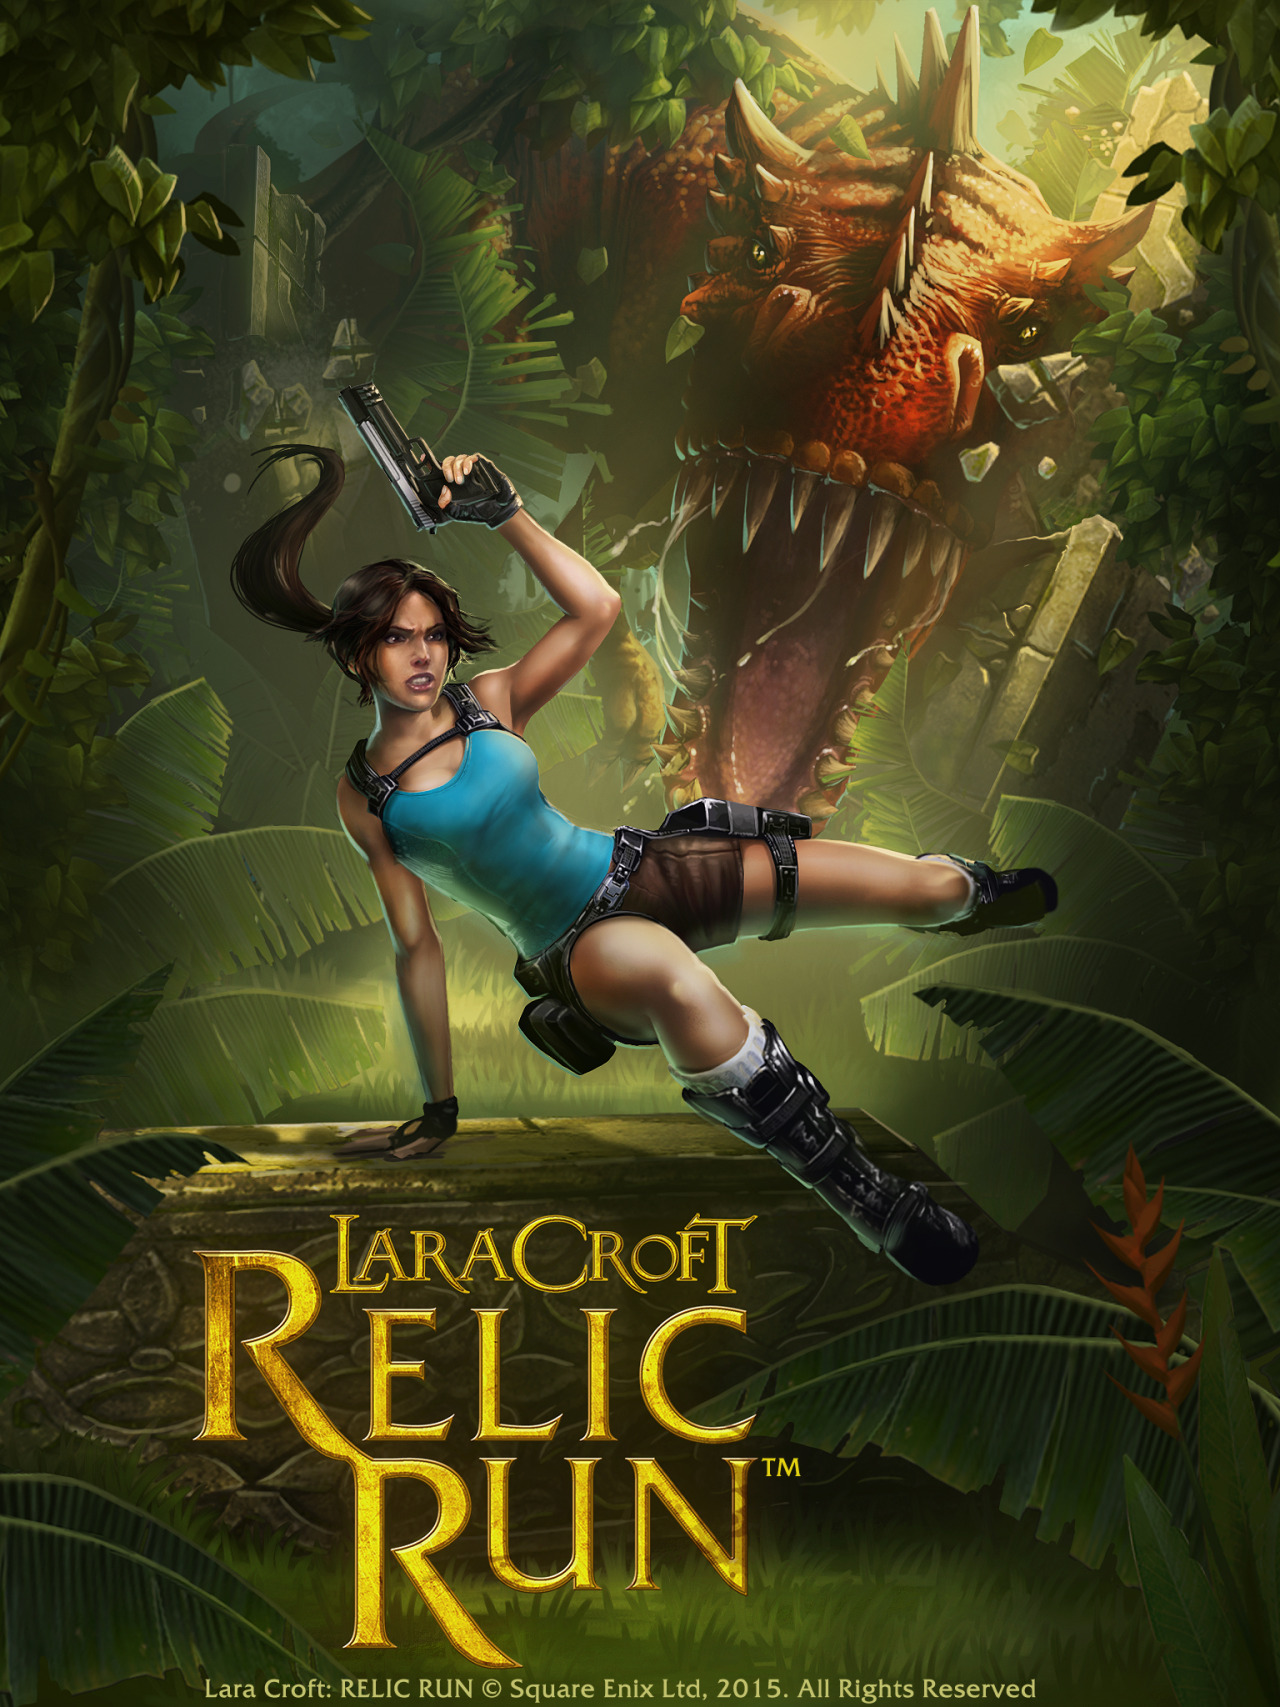 Lara Croft: Relic Run | Lara Croft Wiki | FANDOM powered by